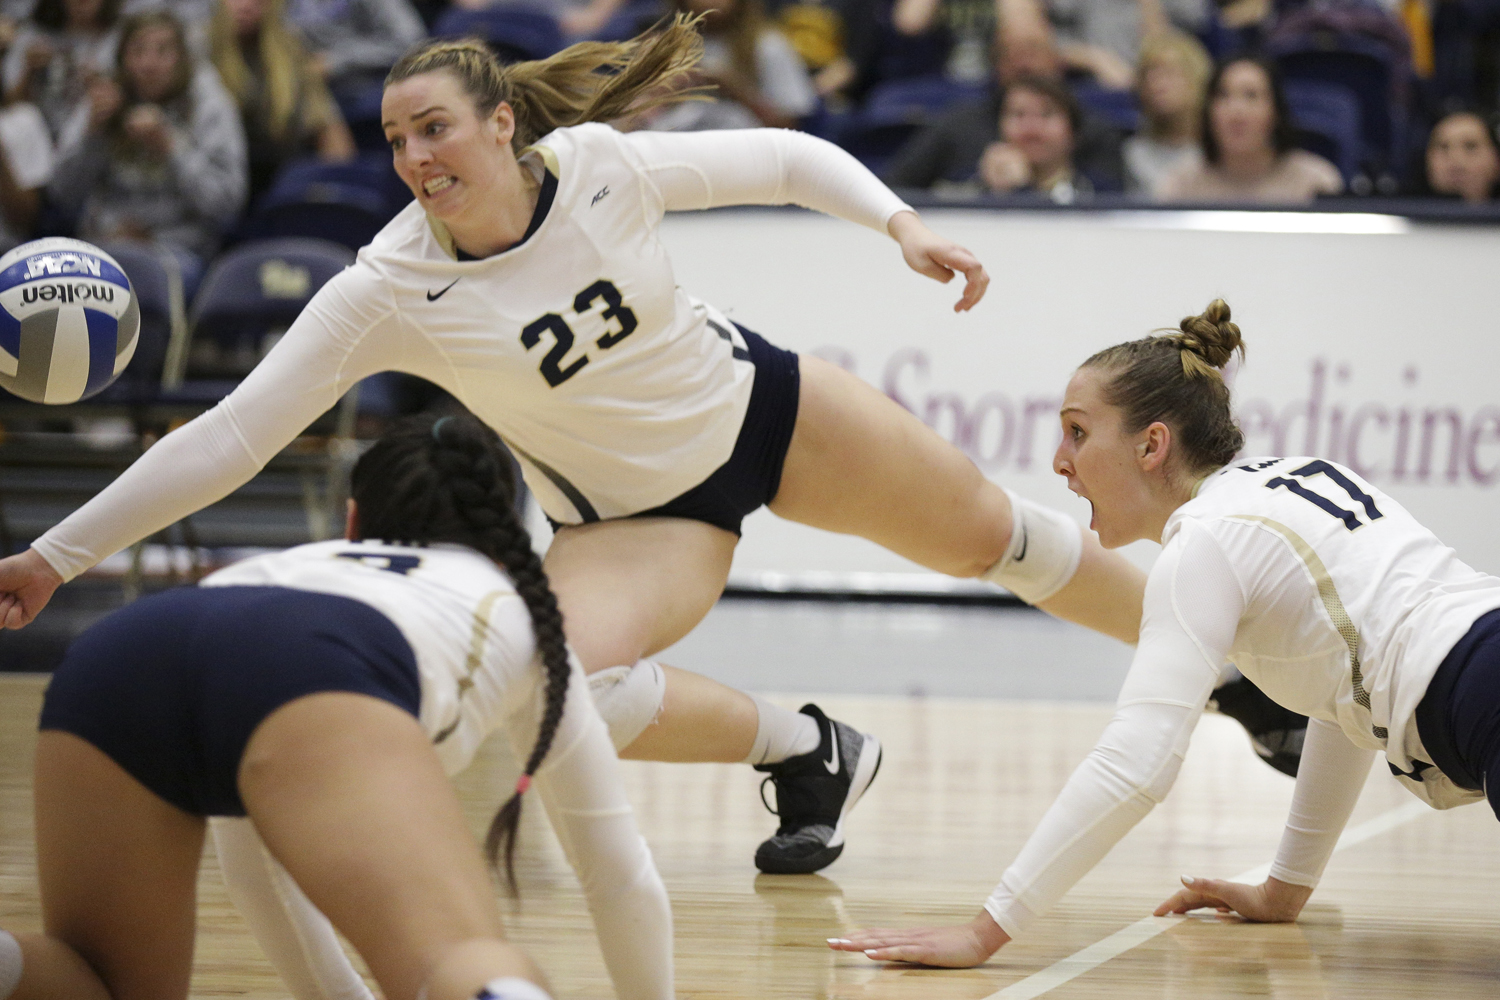 Pitt Volleyball lost its first match of the season, 3-1, this weekend to Duke.